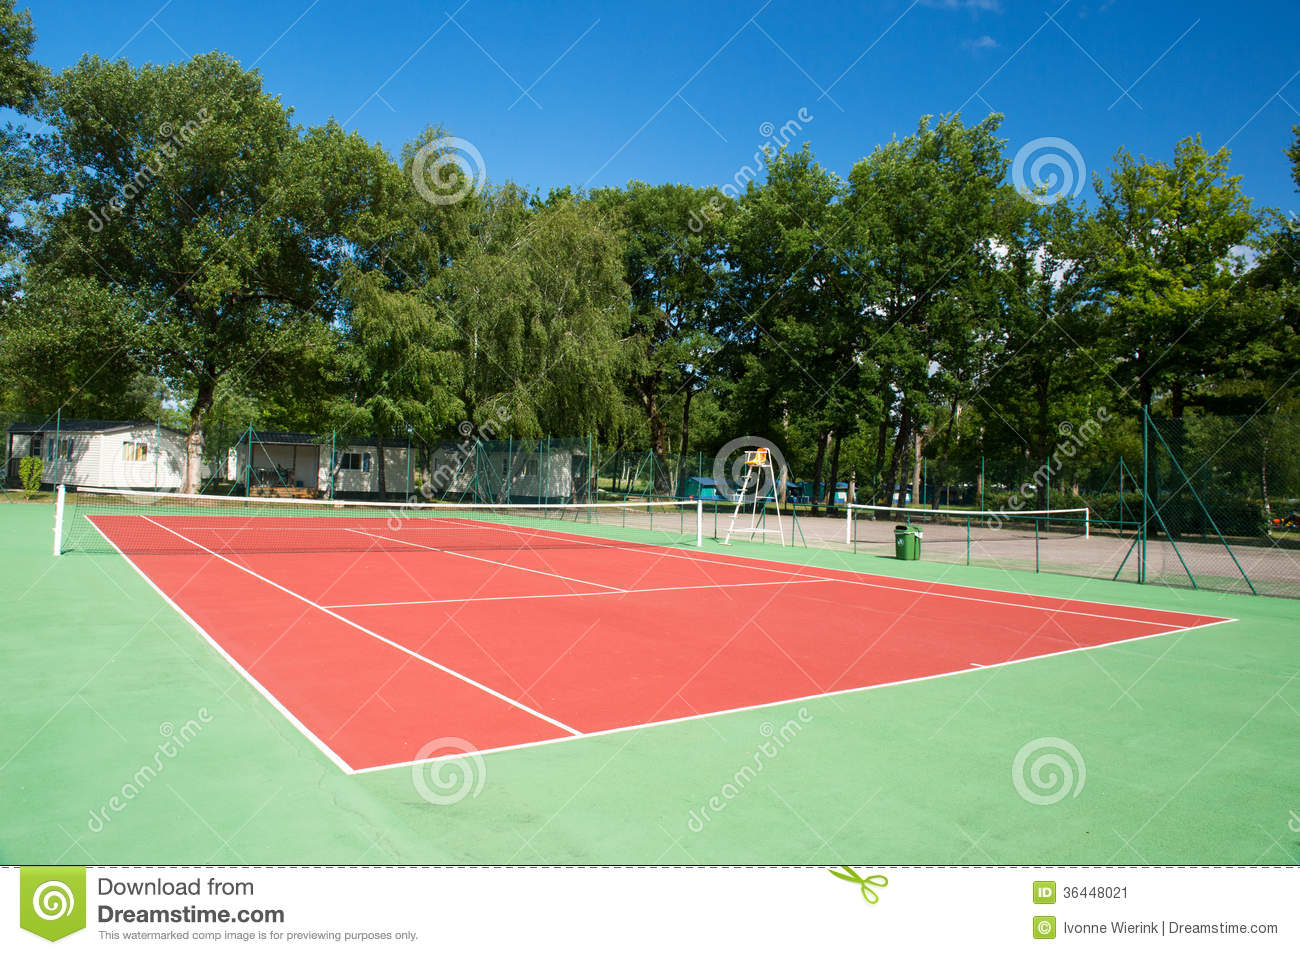 Court de tennis ext rieur image stock image 36448021 for Eclairage court de tennis exterieur